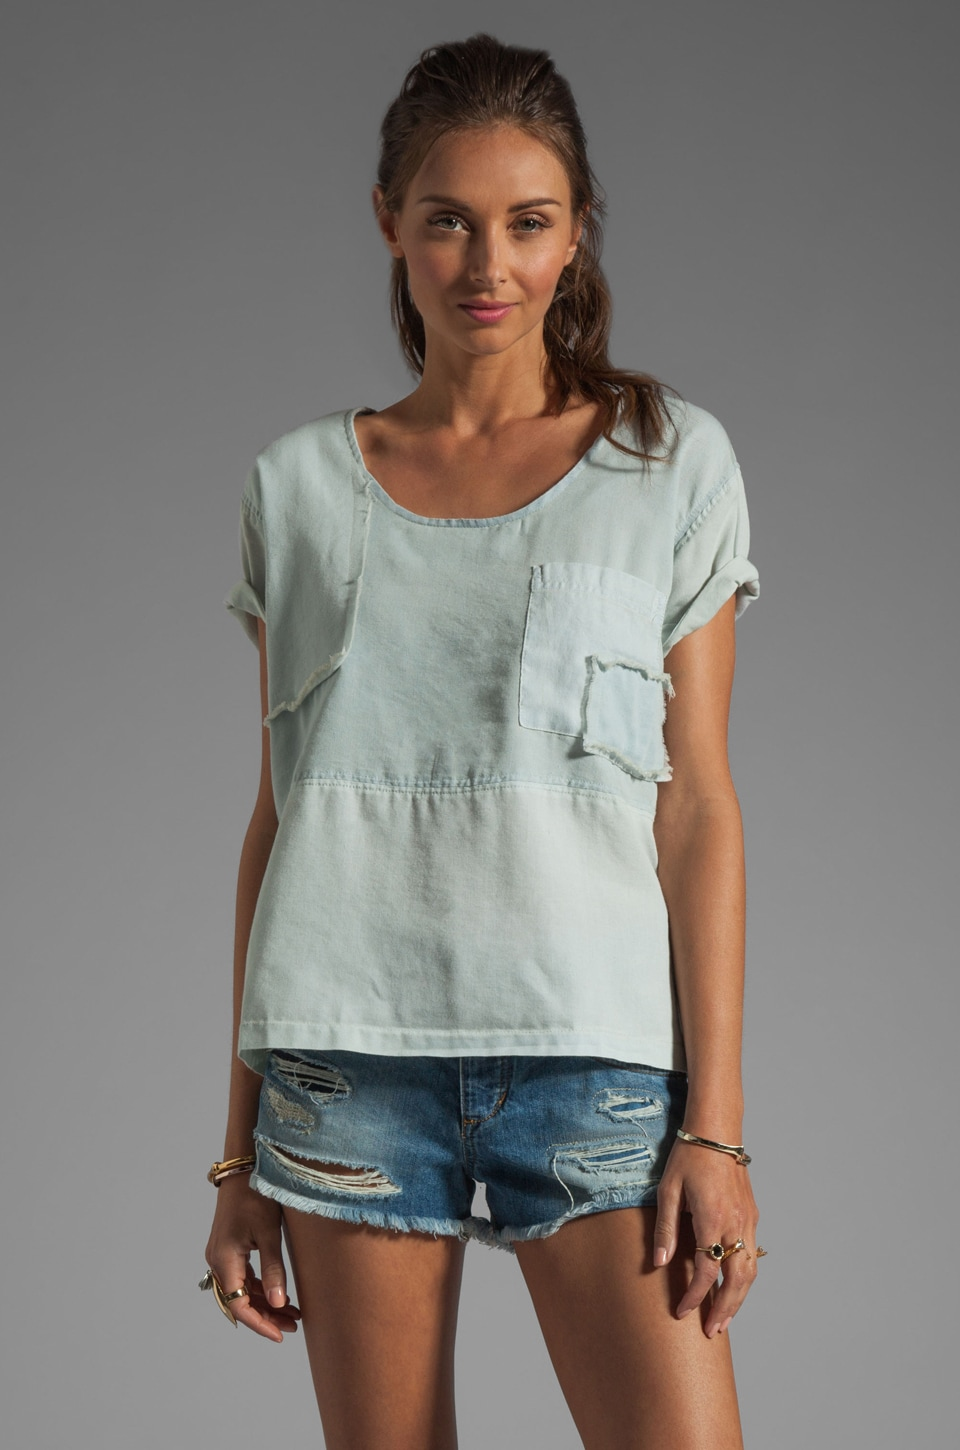 Shona Joy Go Your Own Way T-Shirt in Chambray